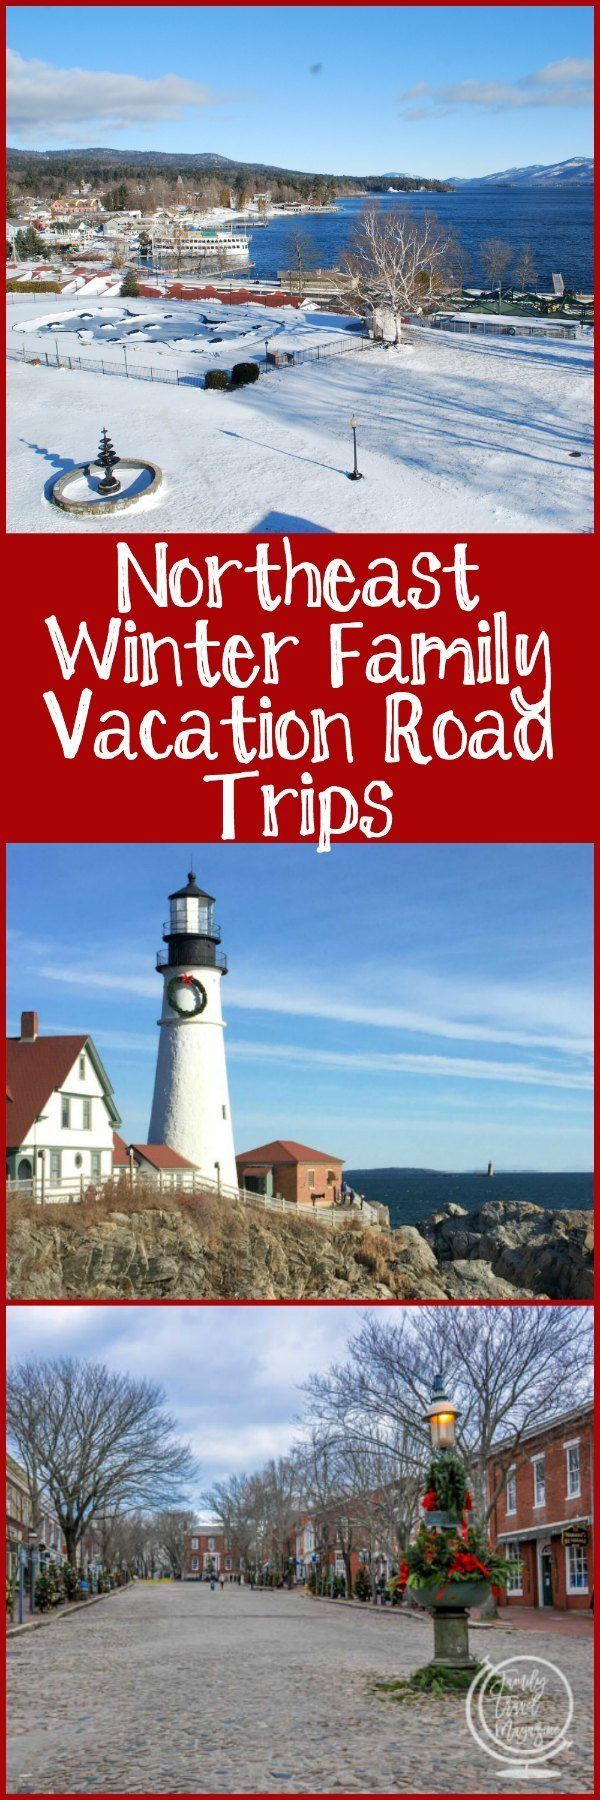 Northeast winter family vacation road trips, including